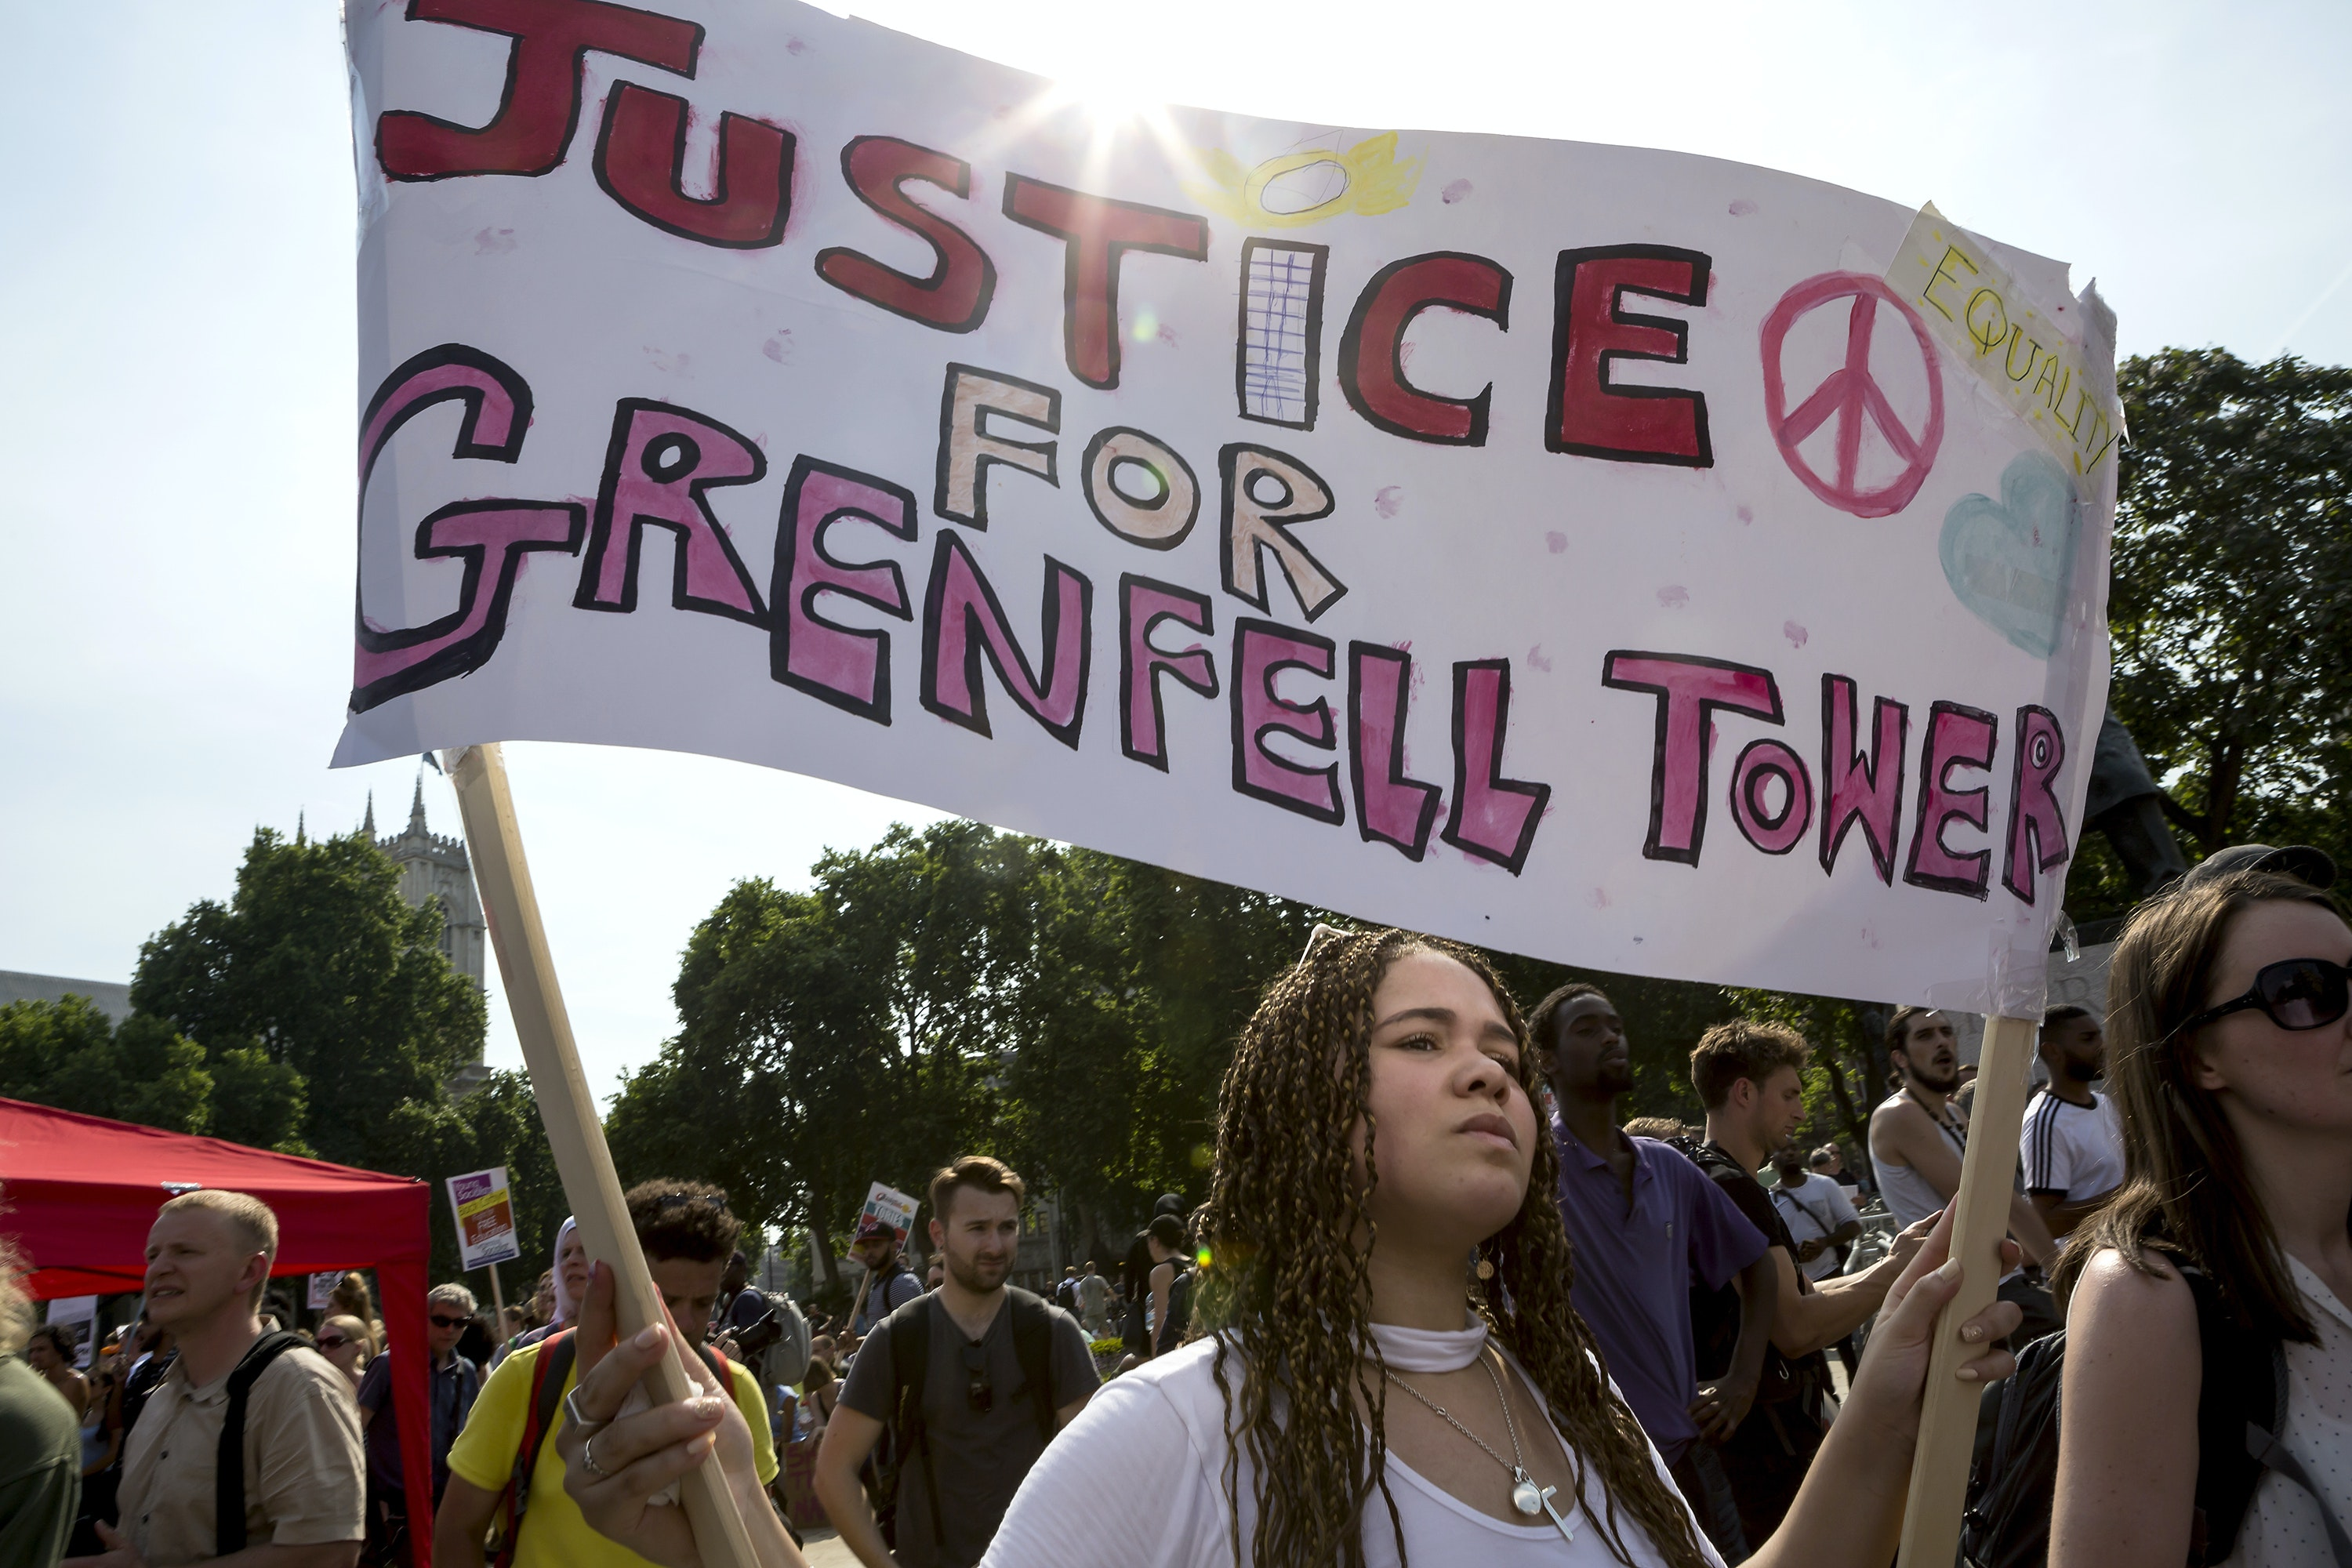 Grenfell Tower: criminal charges delayed, but that doesn't mean there won't be justice